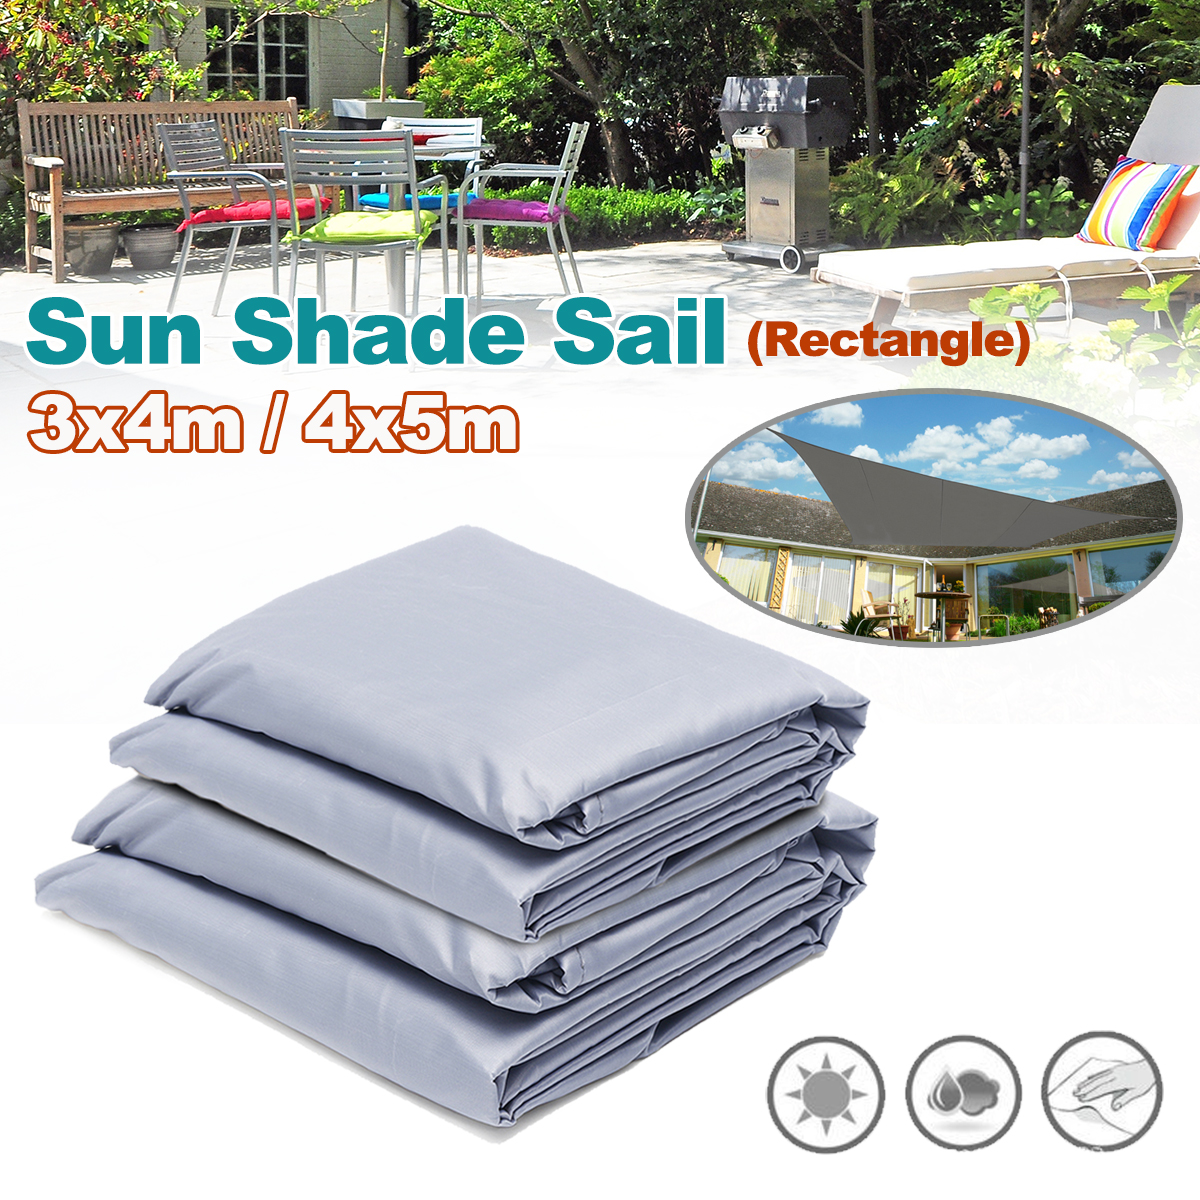 3x4m/4x5m Rectangle Waterproof Sun Shade Awning Cover Cap UV resistant Furniture Rectangle Dust Cover Outdoor Garden